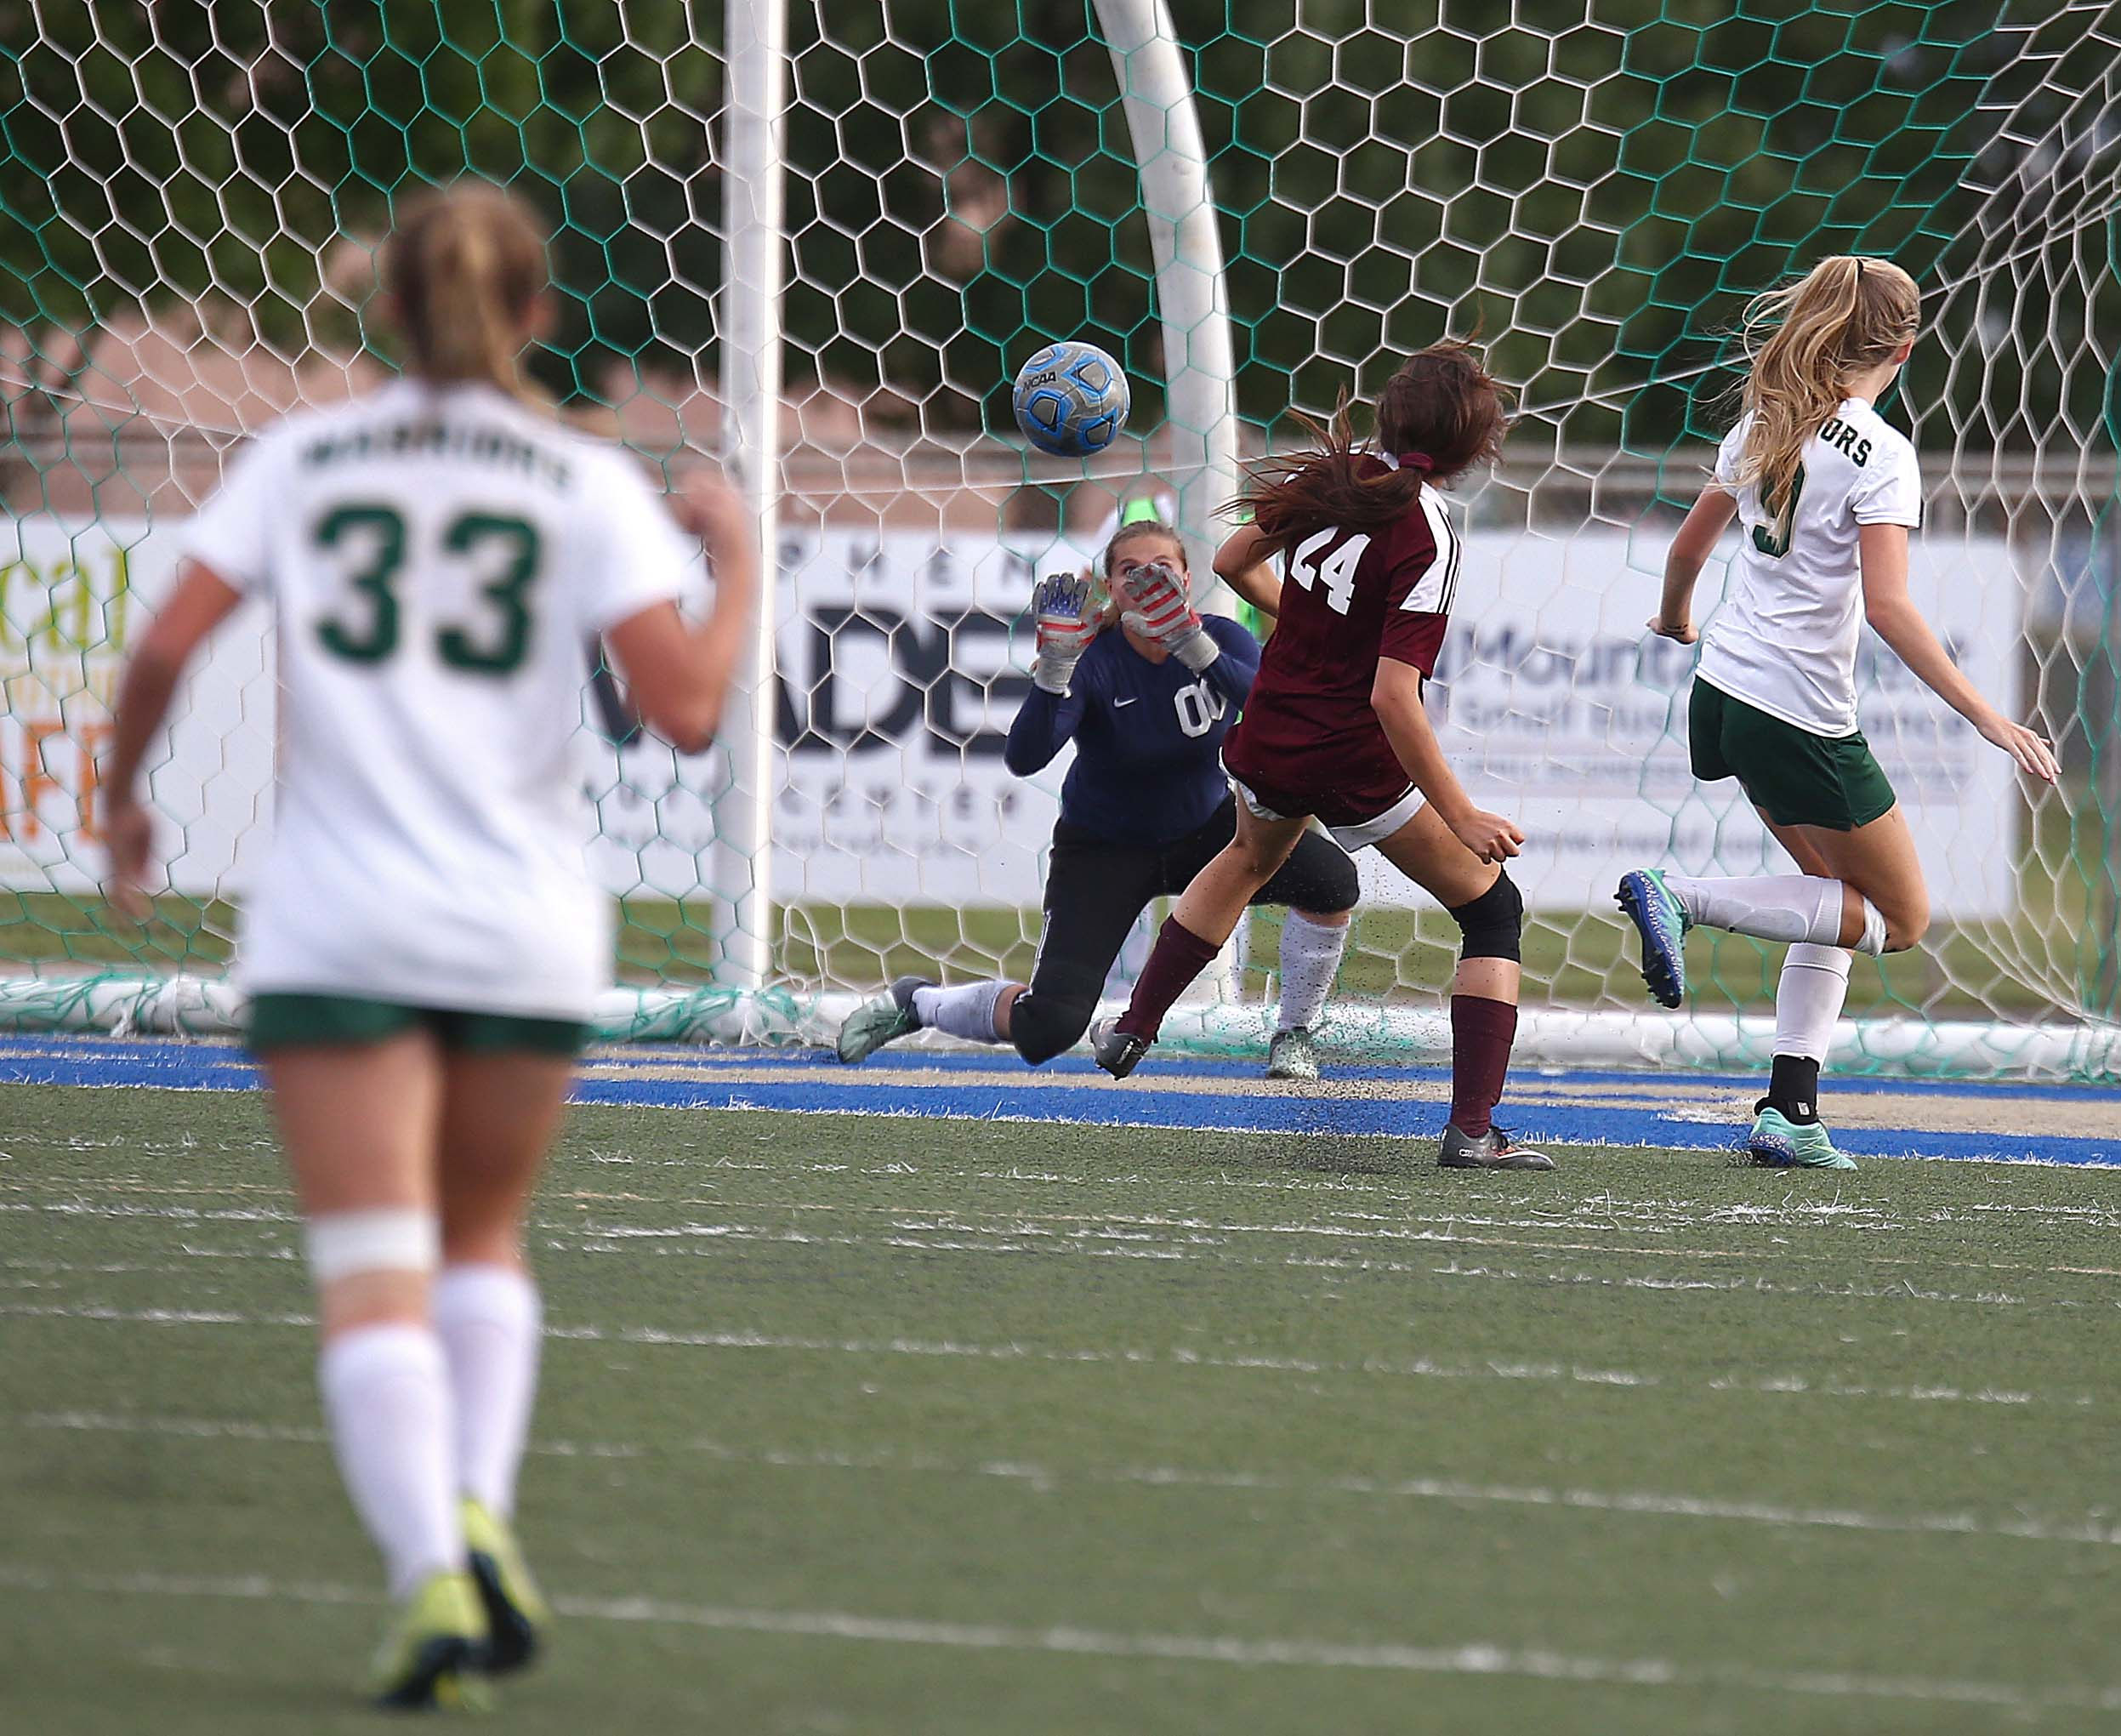 Snow Canyon's Megan Rodgers (00) makes a save, Snow Canyon vs. Morgan, Girls Soccer 3A State Playoffs, St. George, Utah, Oct. 12, 2016,   Photo by Robert Hoppie, ASPpix.com, St. George News